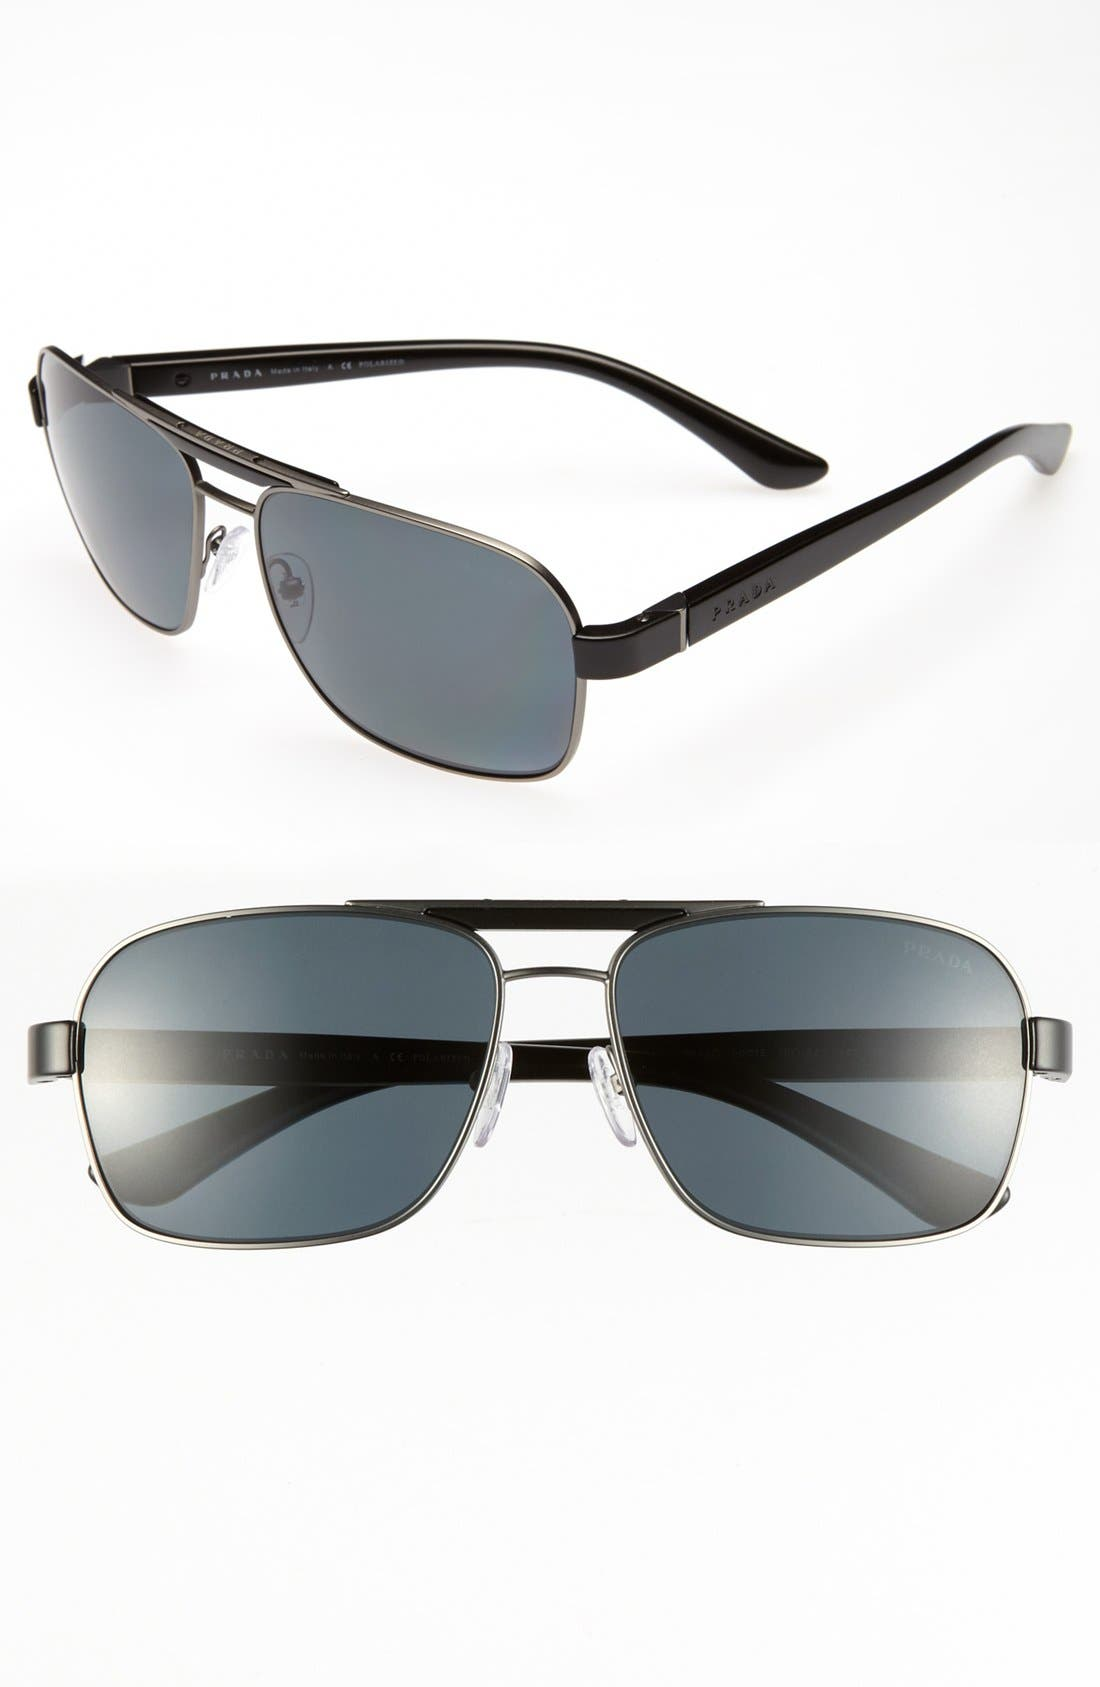 Alternate Image 1 Selected - Prada 60mm Polarized Retro Sunglasses